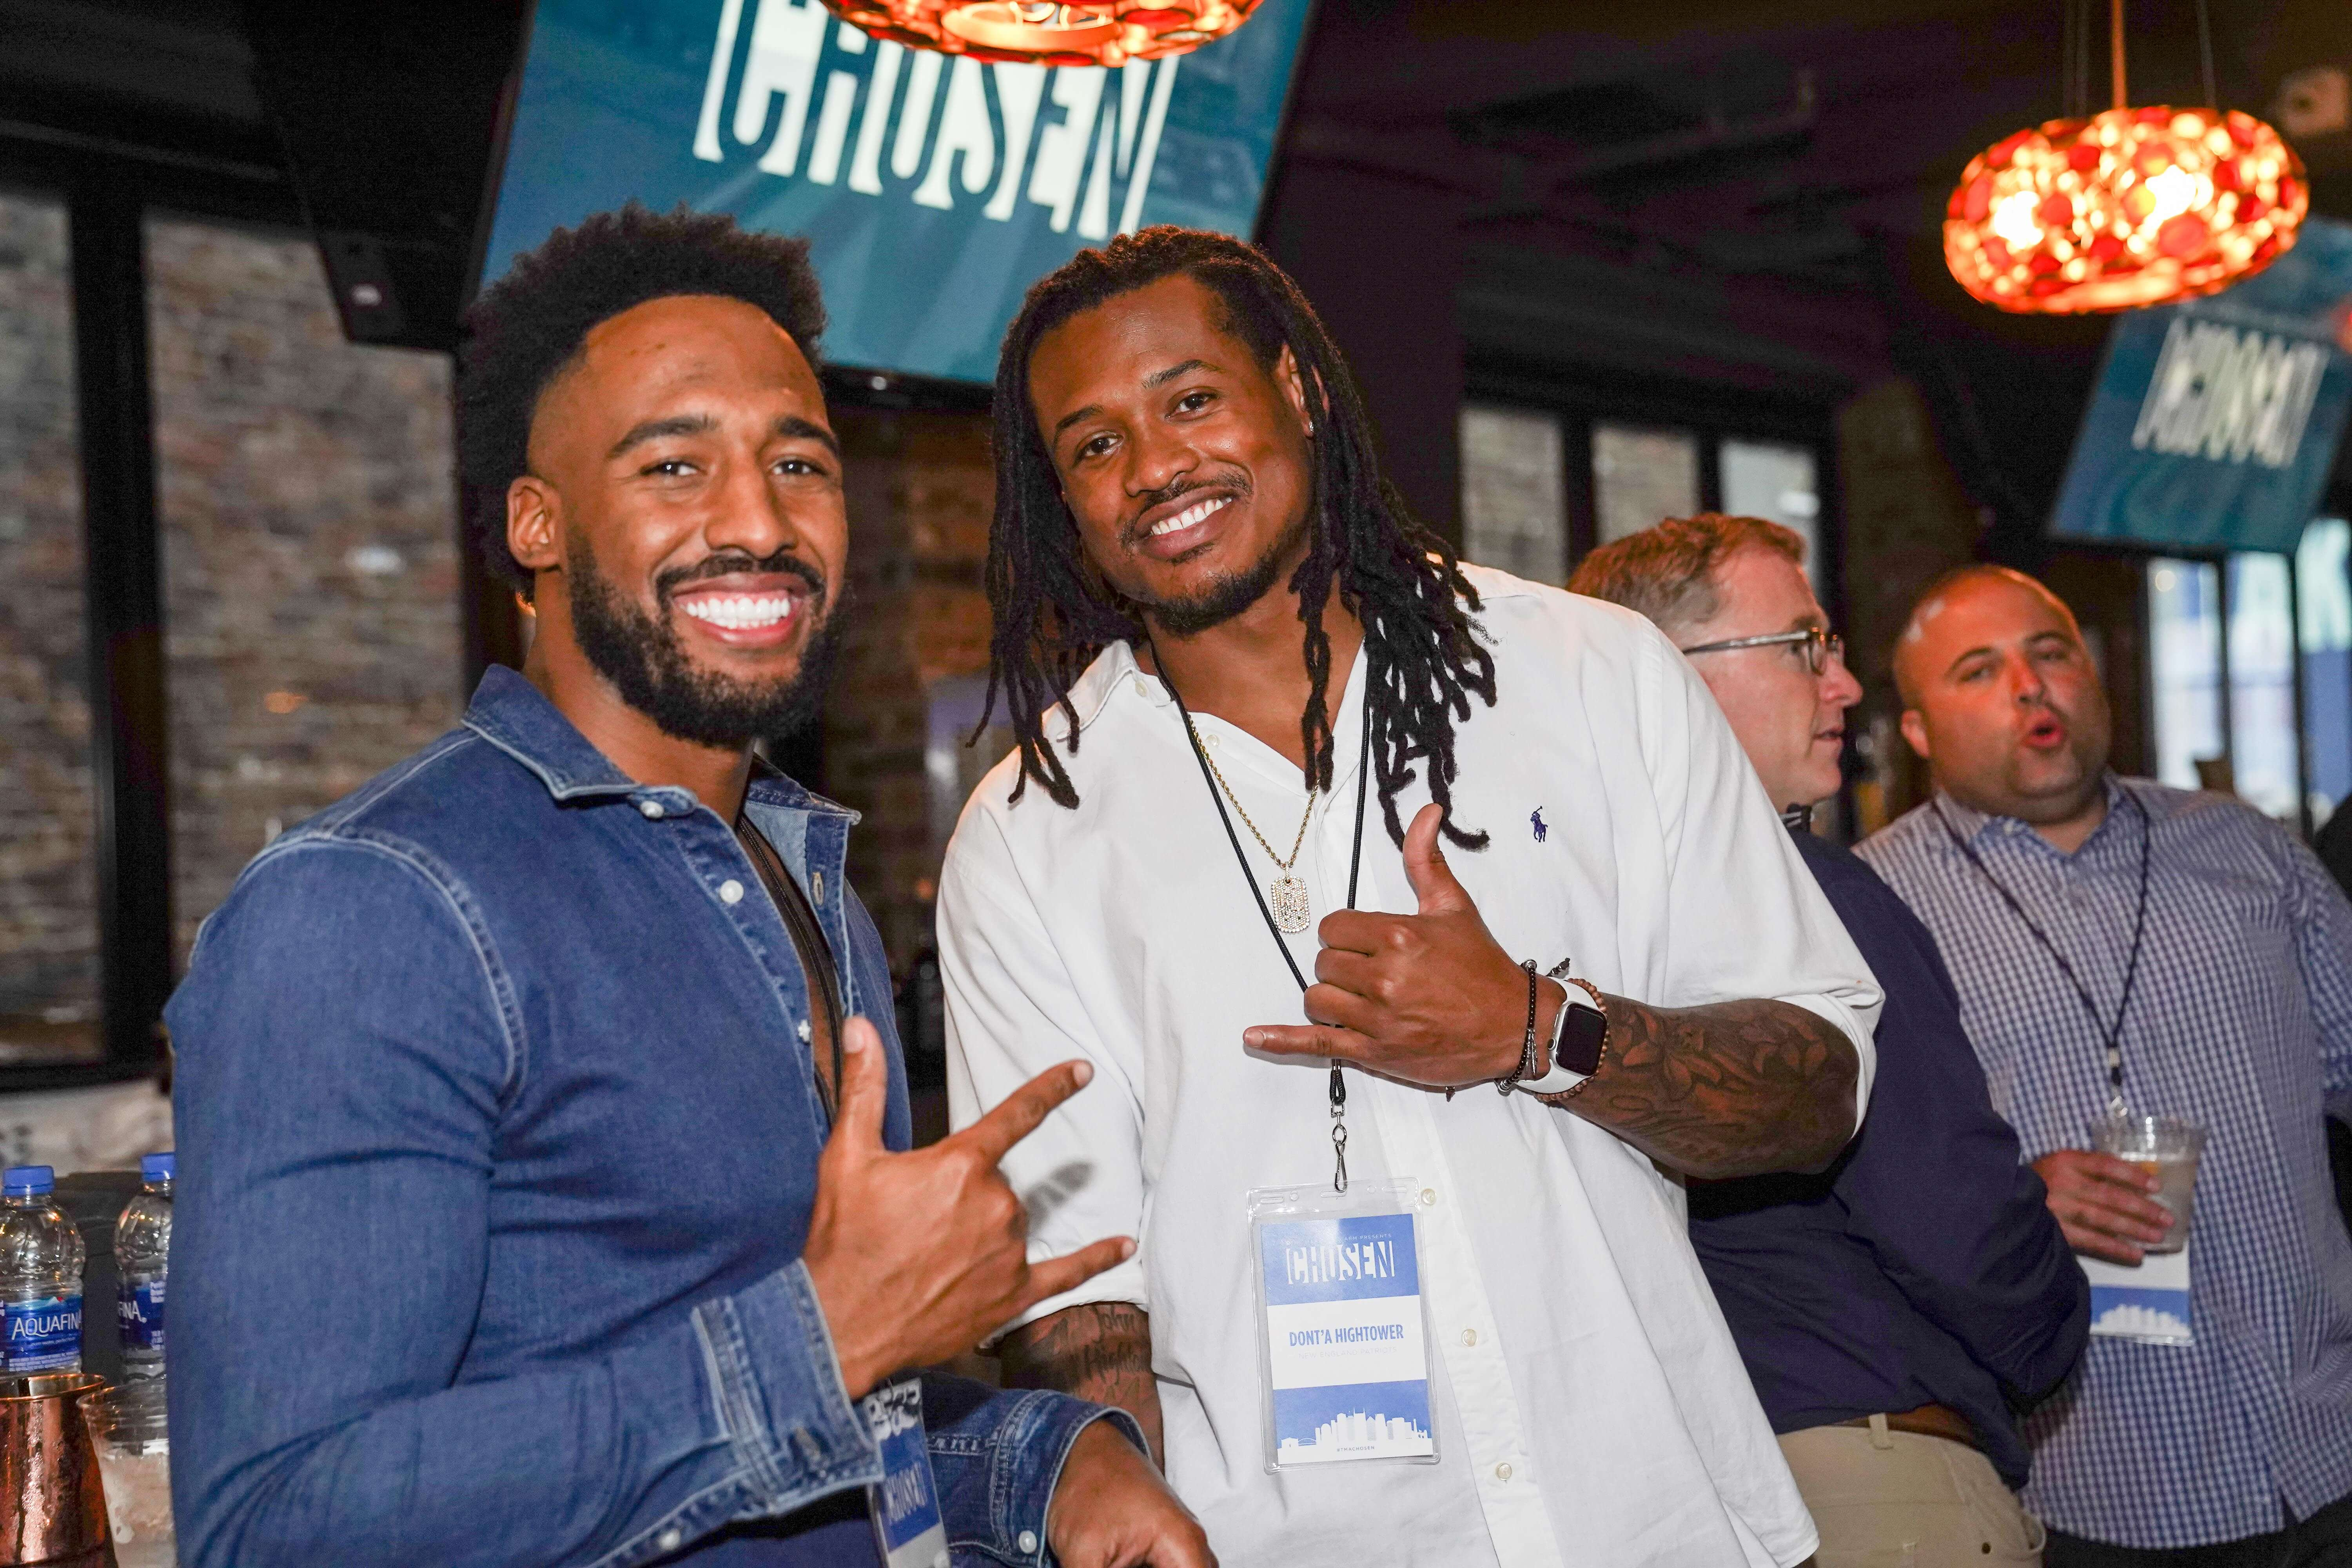 Celebrity guests included Tennessee Titans Logan Ryan and Adoree Jackson, New England Patriot Dont'a Hightower, and NFL TV personalities Booger McFarland, Ian Rapoport, Nate Burleson, Kyle Brandt, and Merril Hoge.